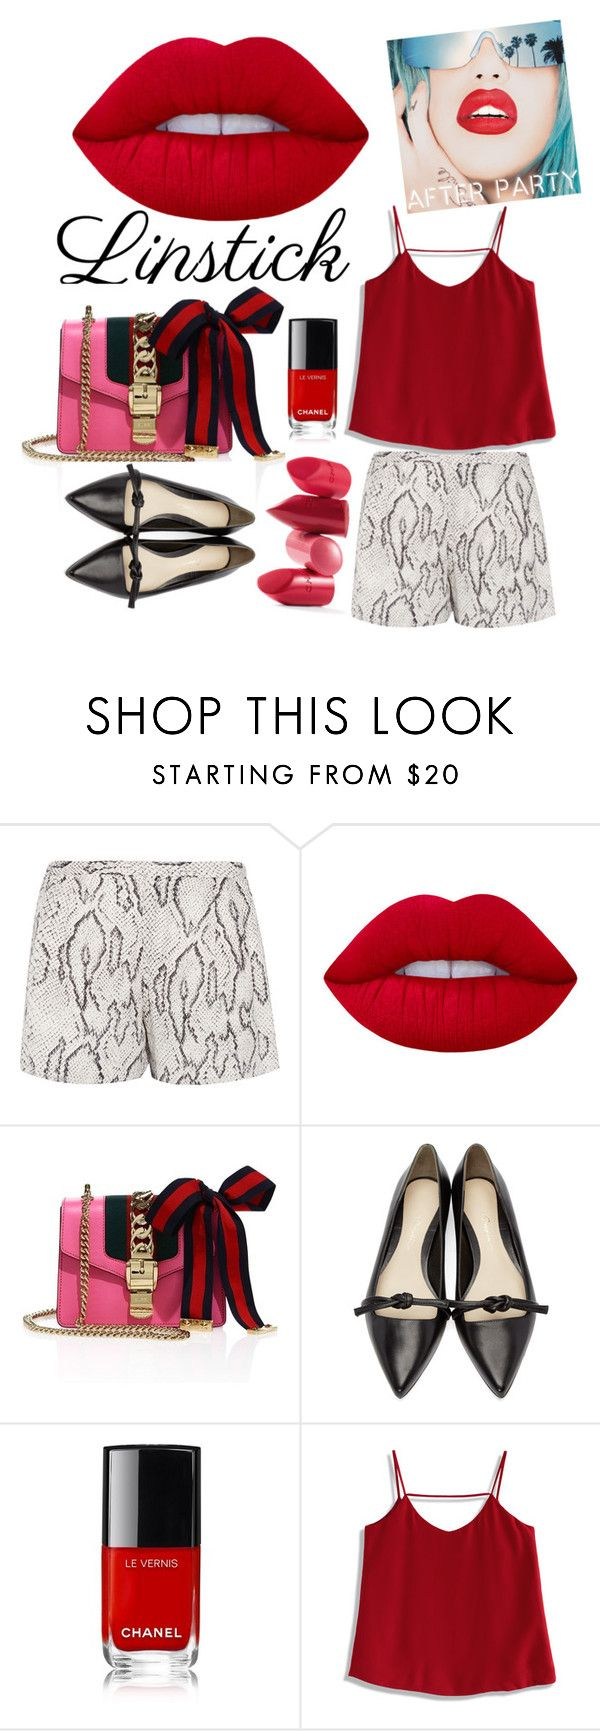 """#theredlips"" by mydesiredcloset ❤ liked on Polyvore featuring beauty, Haute Hippie, Lime Crime, Gucci, 3.1 Phillip Lim, Rupaul, Chicwish and Rossetto"